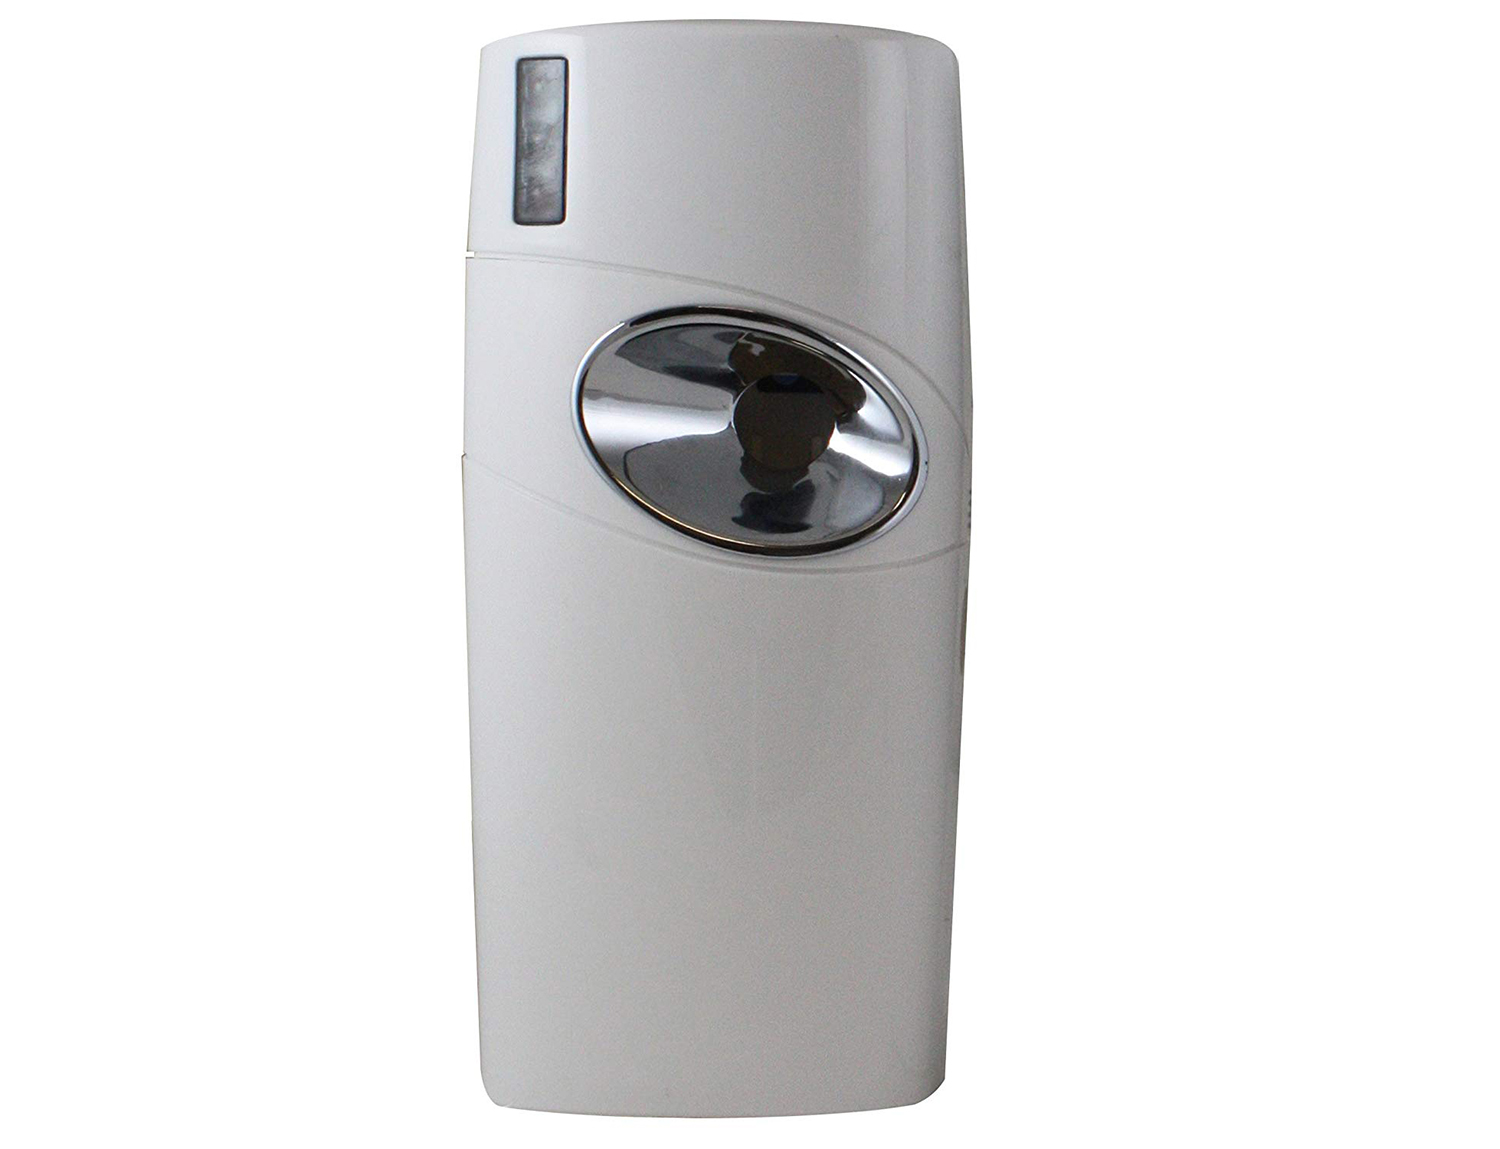 Claire CL7-MICROCC Micro-Metered Air Freshener Dispenser